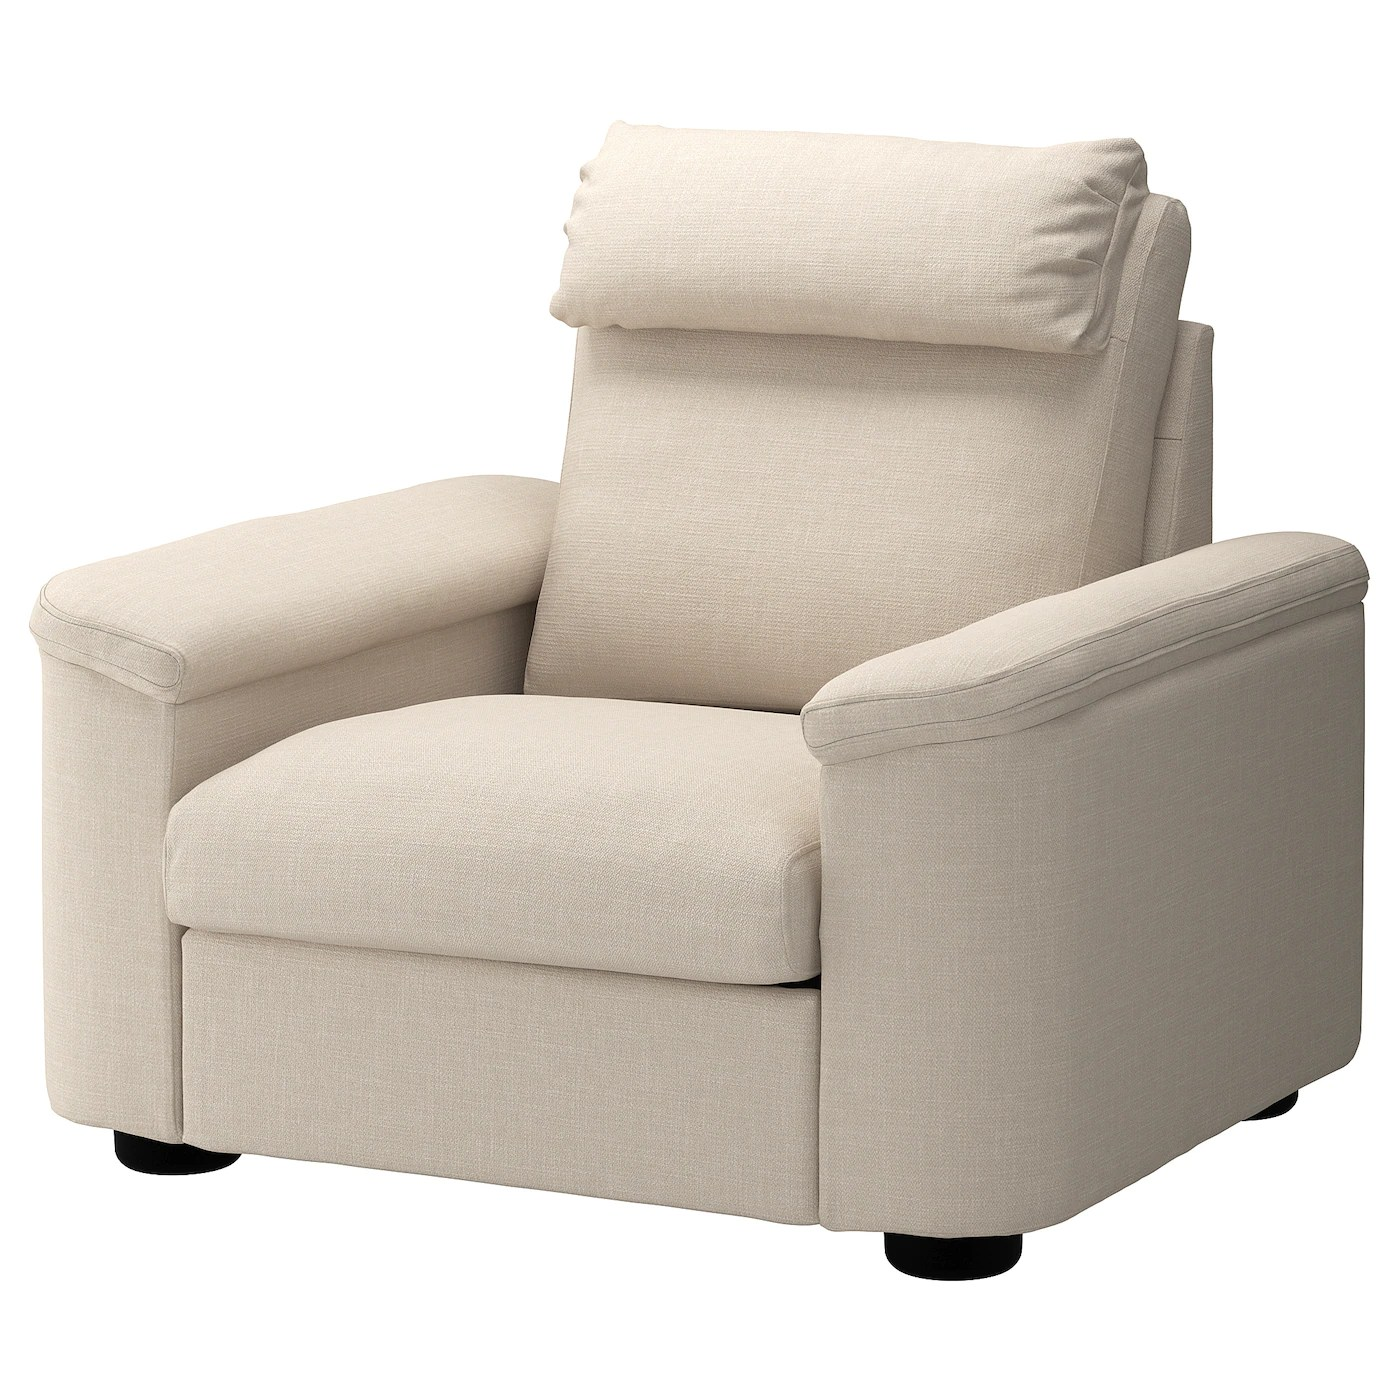 Lidhult Fauteuil Gassebol Beige Clair Ikea Canada Ikea